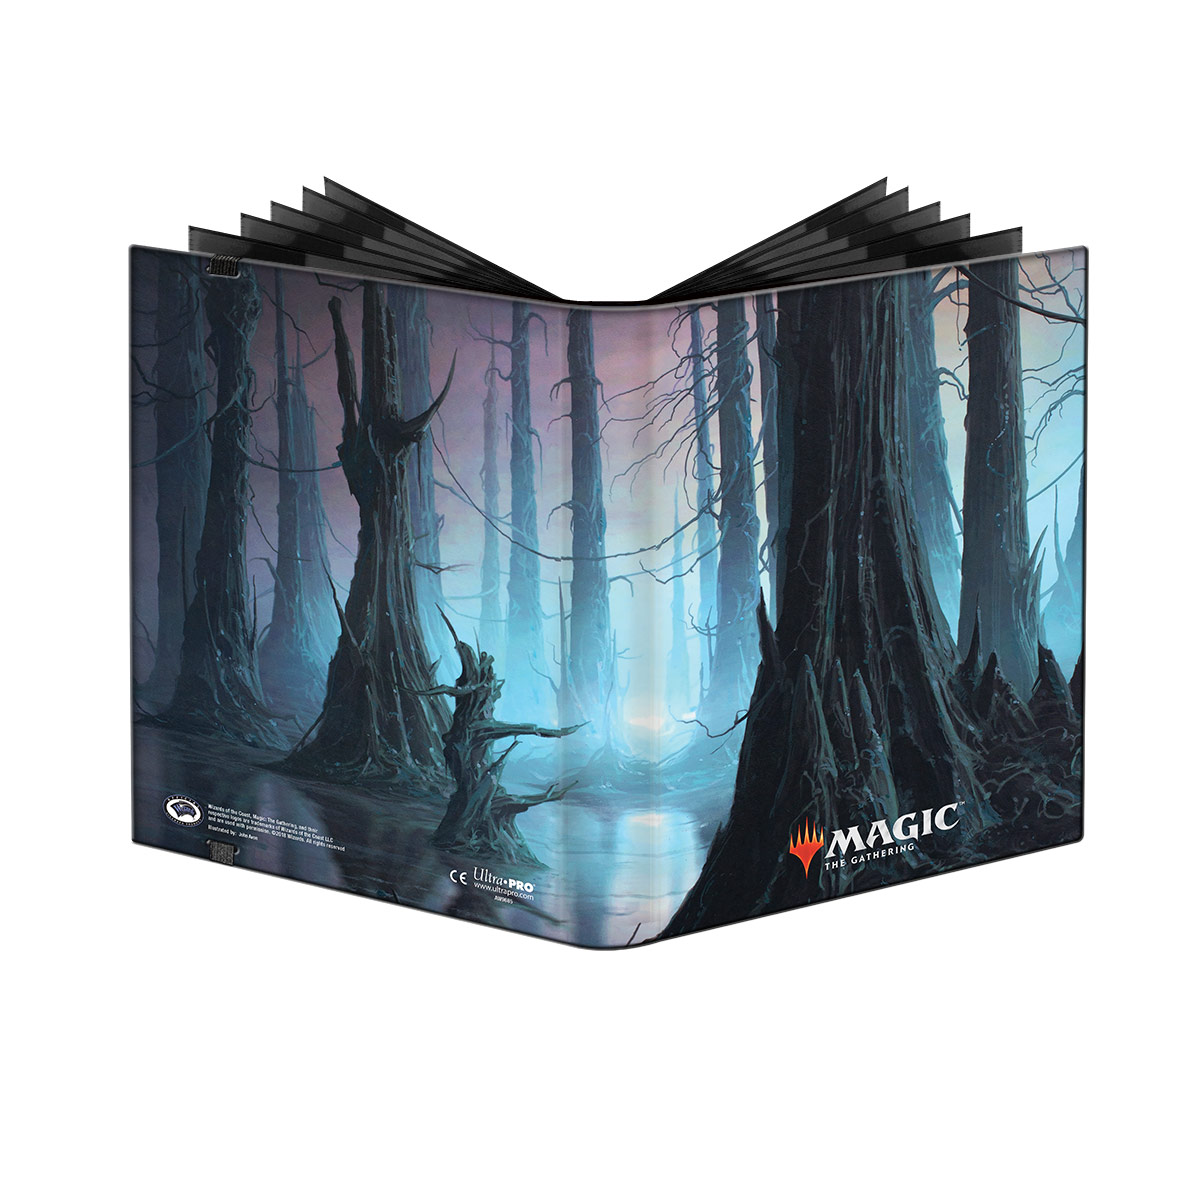 Album A4 UltraPRO PRO Binder - Unstable Lands Swamp